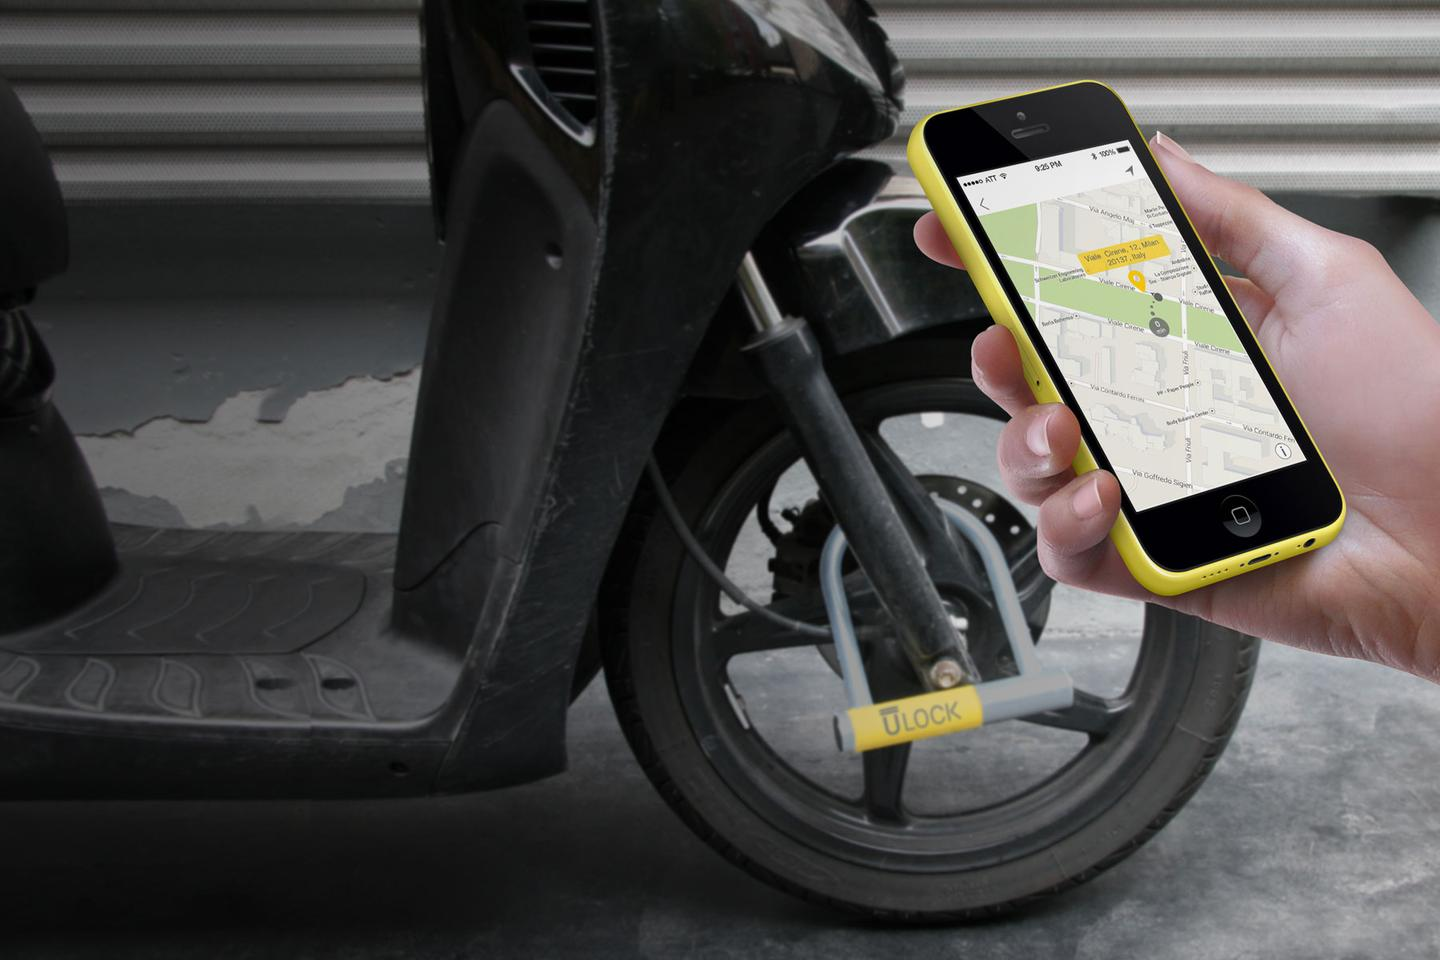 The Ulock is locked and unlocked via the user's smartphone